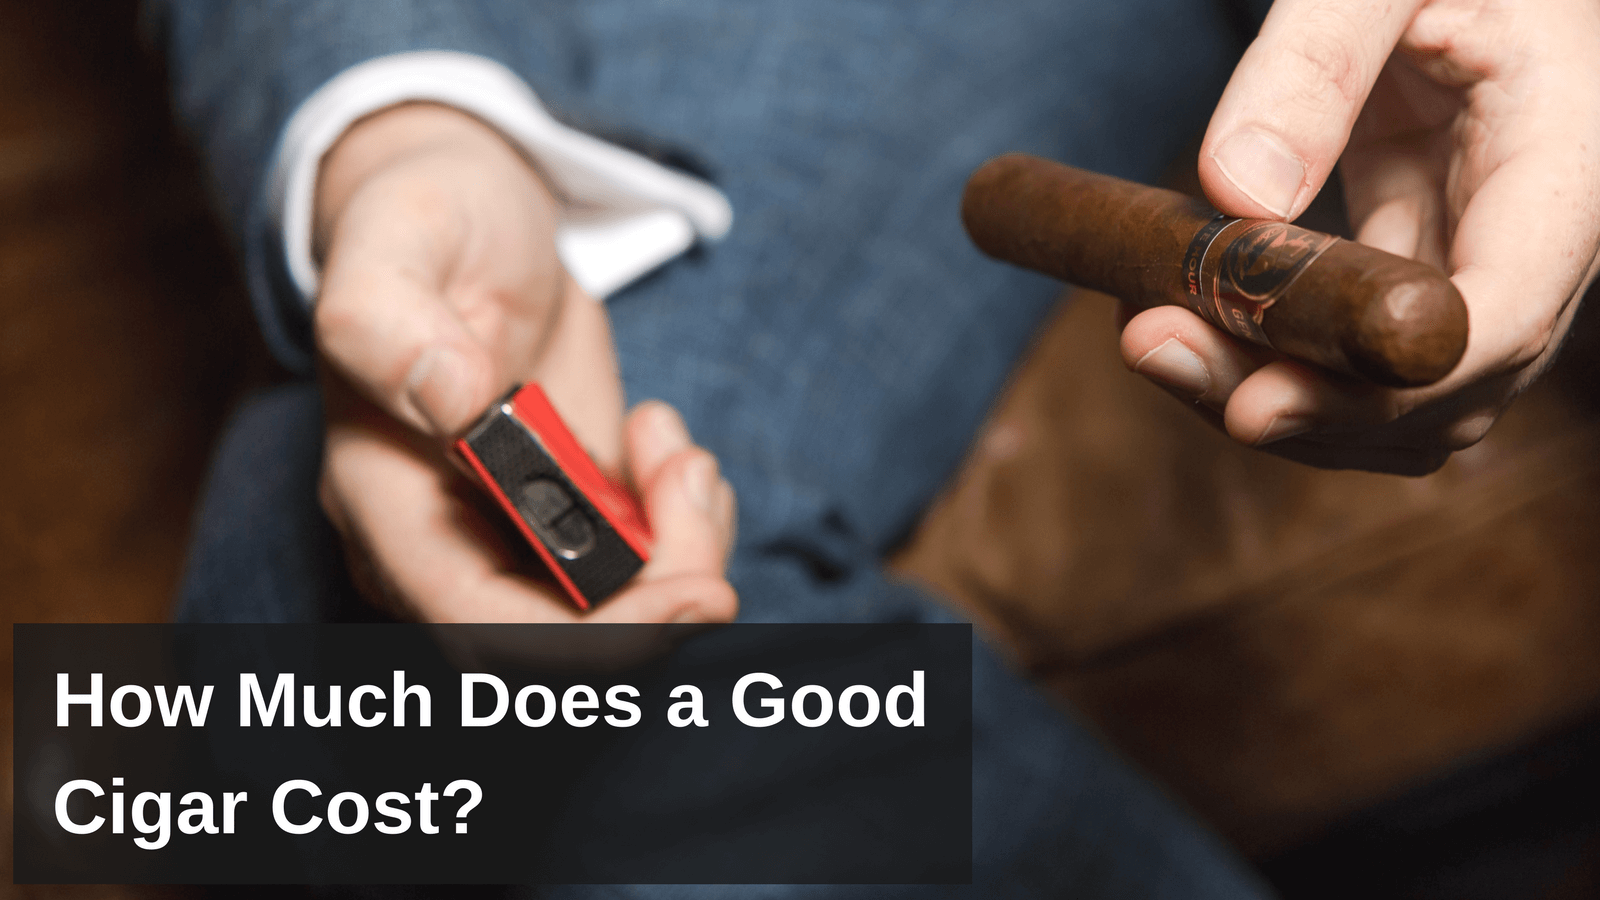 How Much Does A Good Cigar Cost?